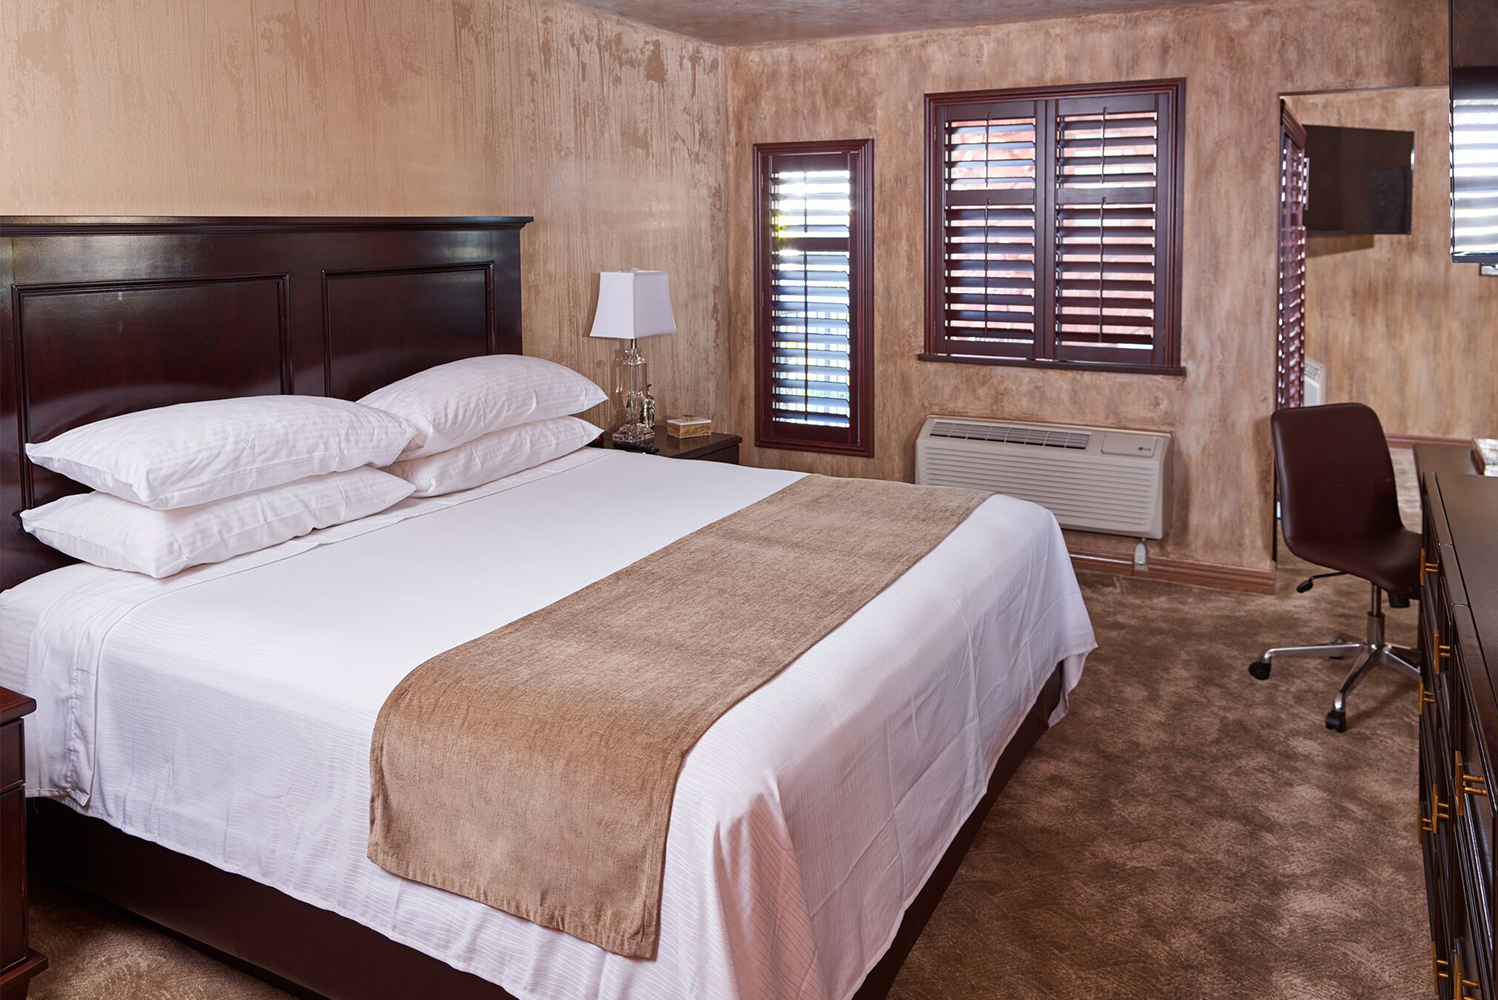 The rooms were renovated with the 21st century traveler in mind, with USB chargers added to all bedside tables and mini-refrigerators and safes included.